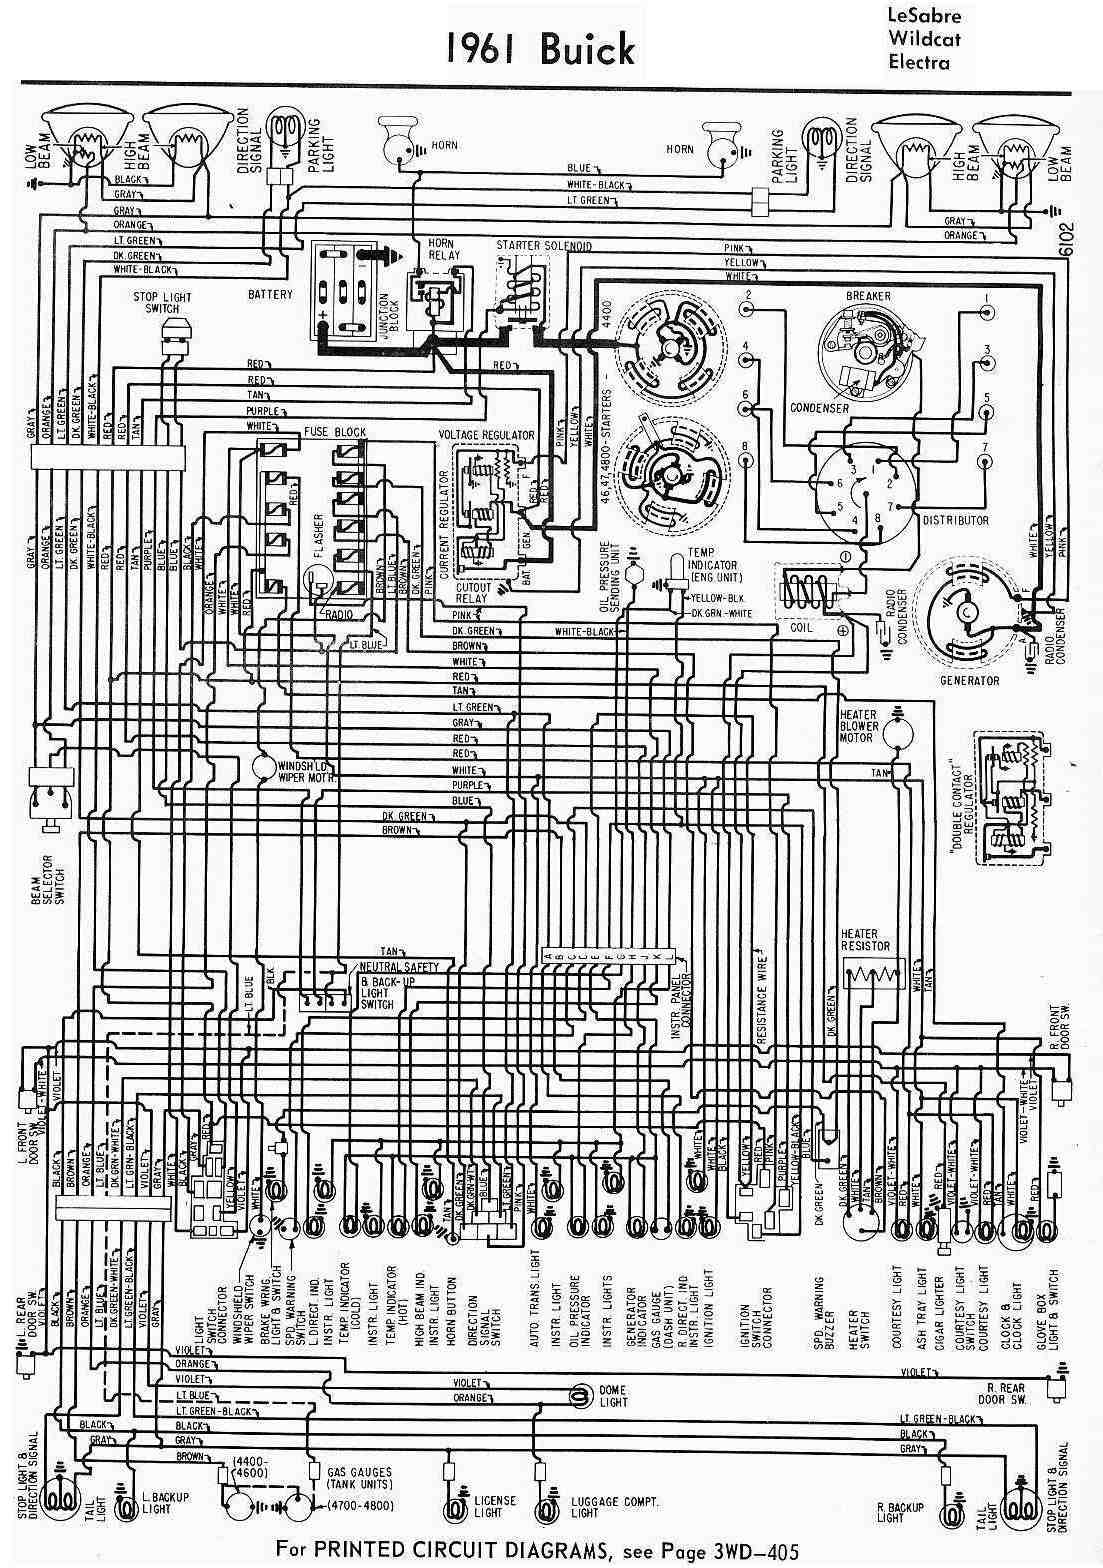 hight resolution of 1961 chrysler wiring diagram wiring diagrams posts car diagrams 1961 cadillac wiring diagram 1967 plymouth